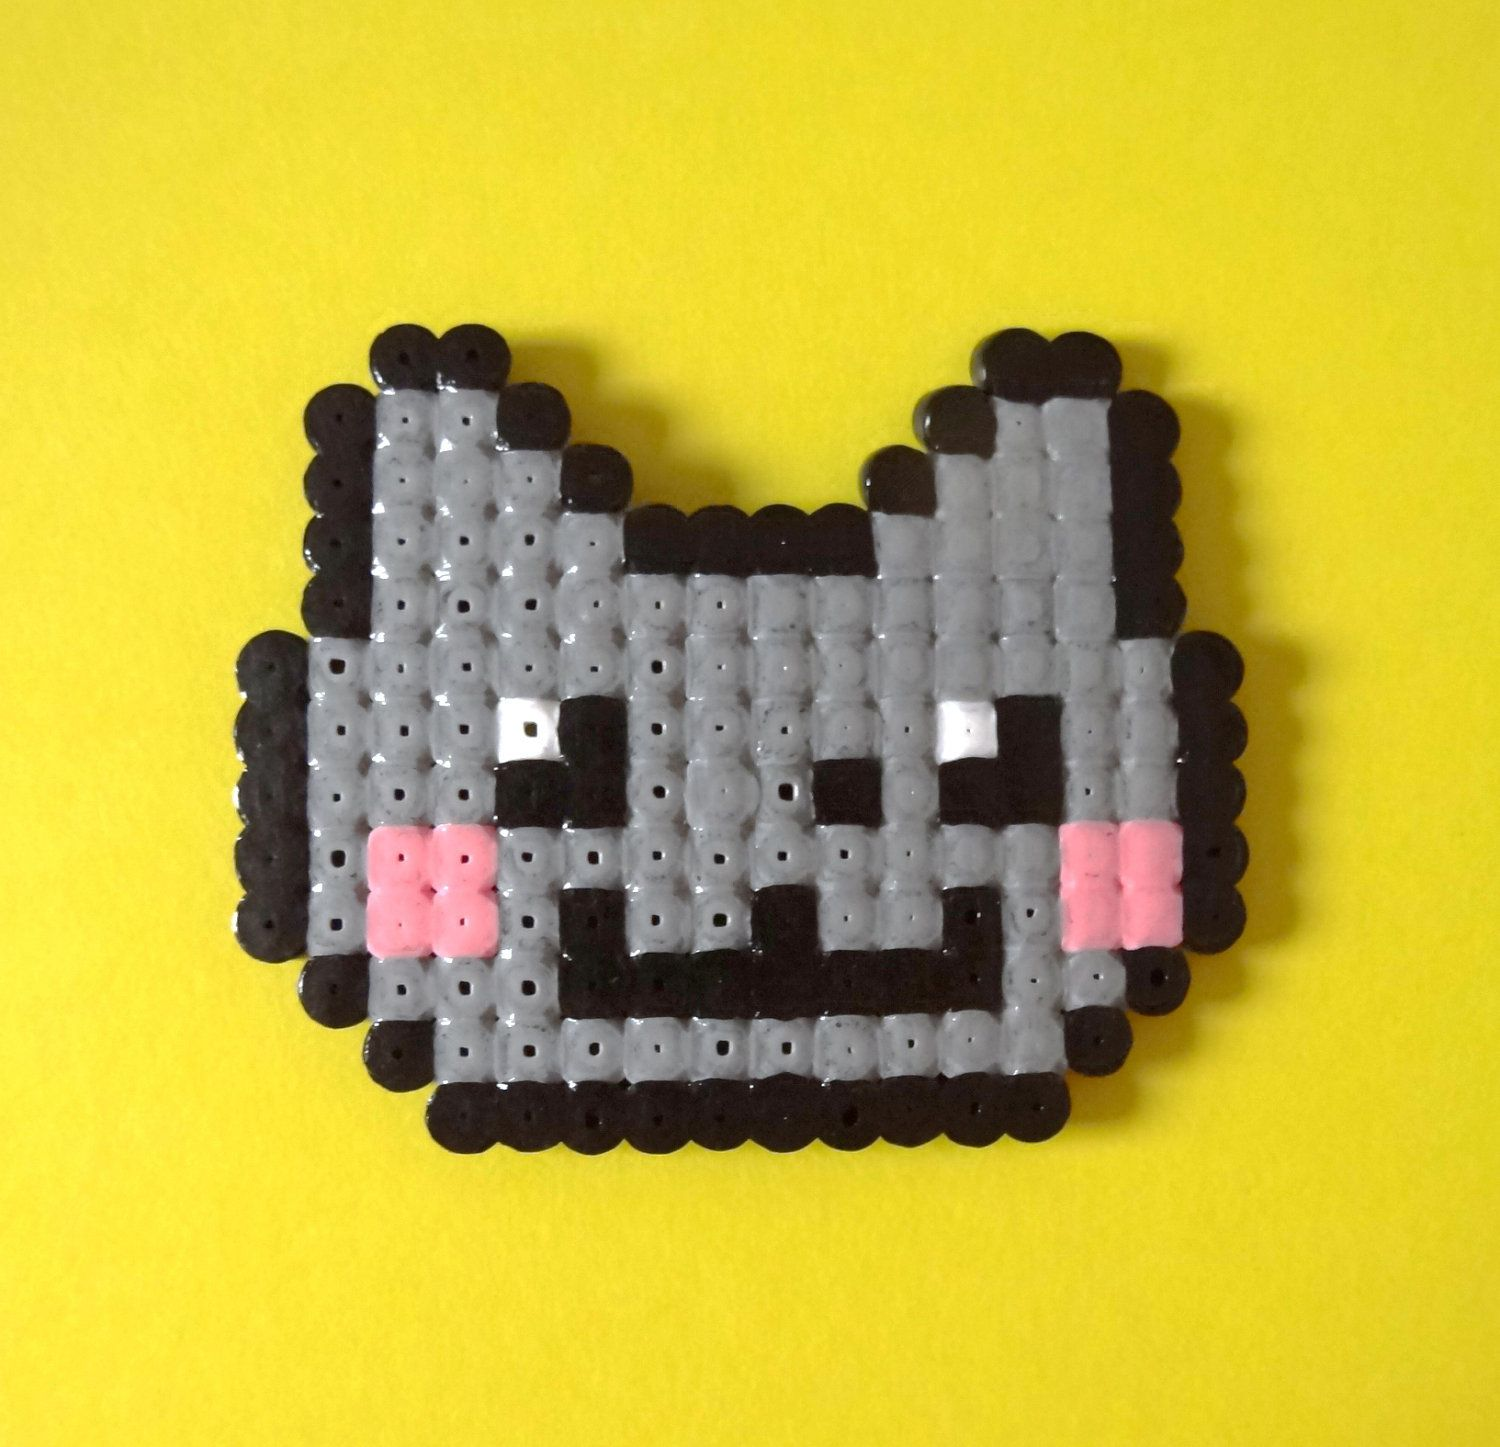 Nyan Cat My Geek Side3 Pinterest Beads Perler Beads And Hama